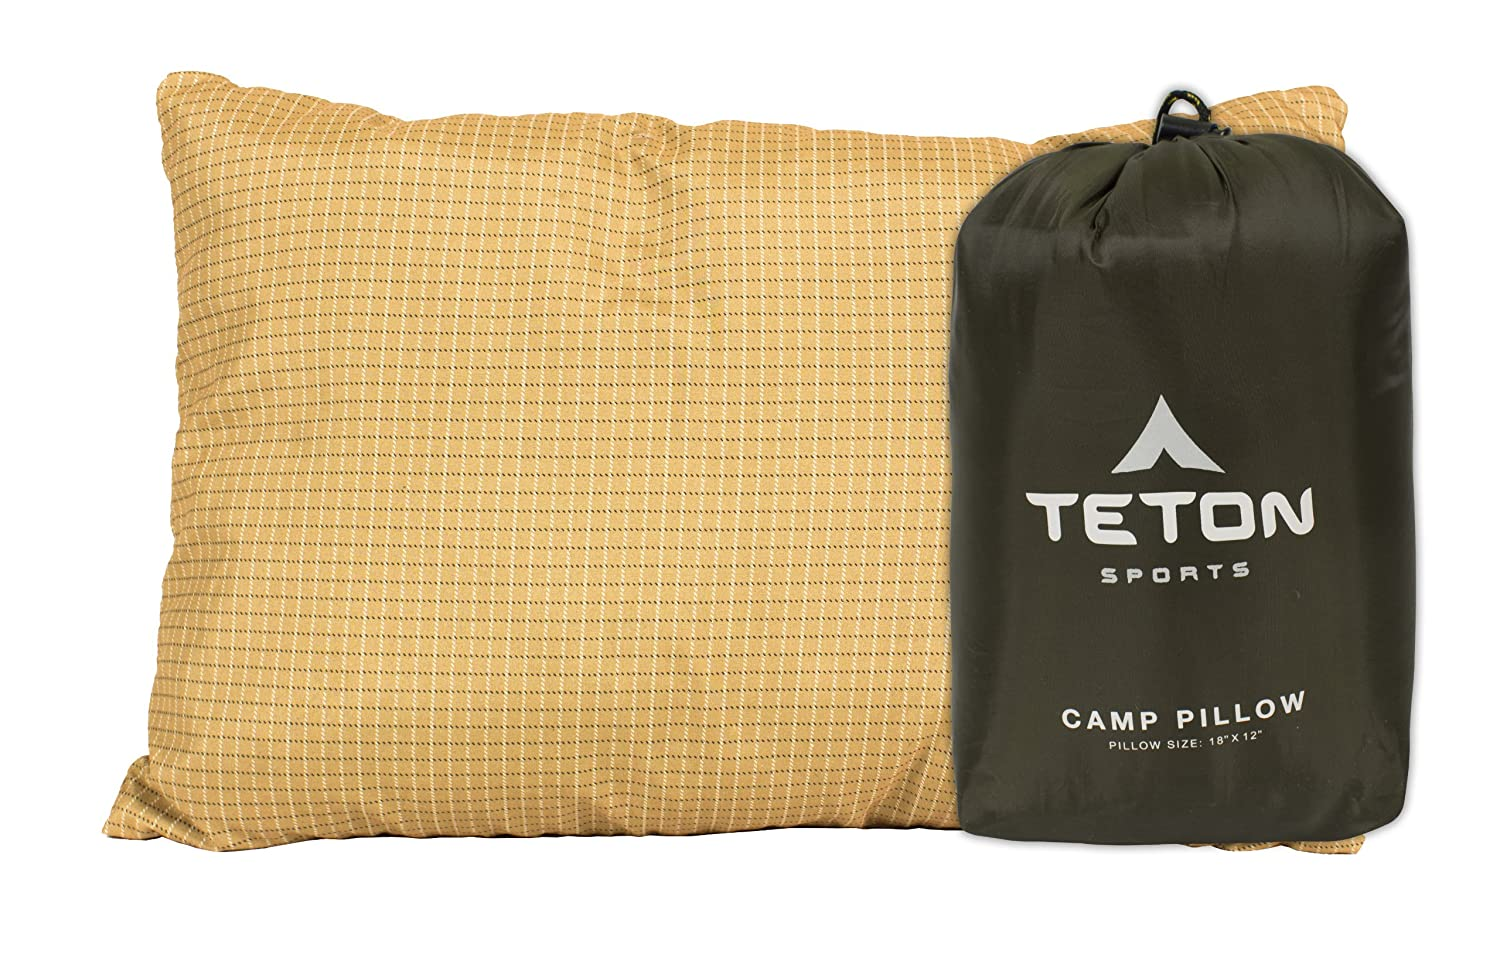 TETON Sports Camp Pillow Perfect for Camping and Travel; Free Stuff Sack Included